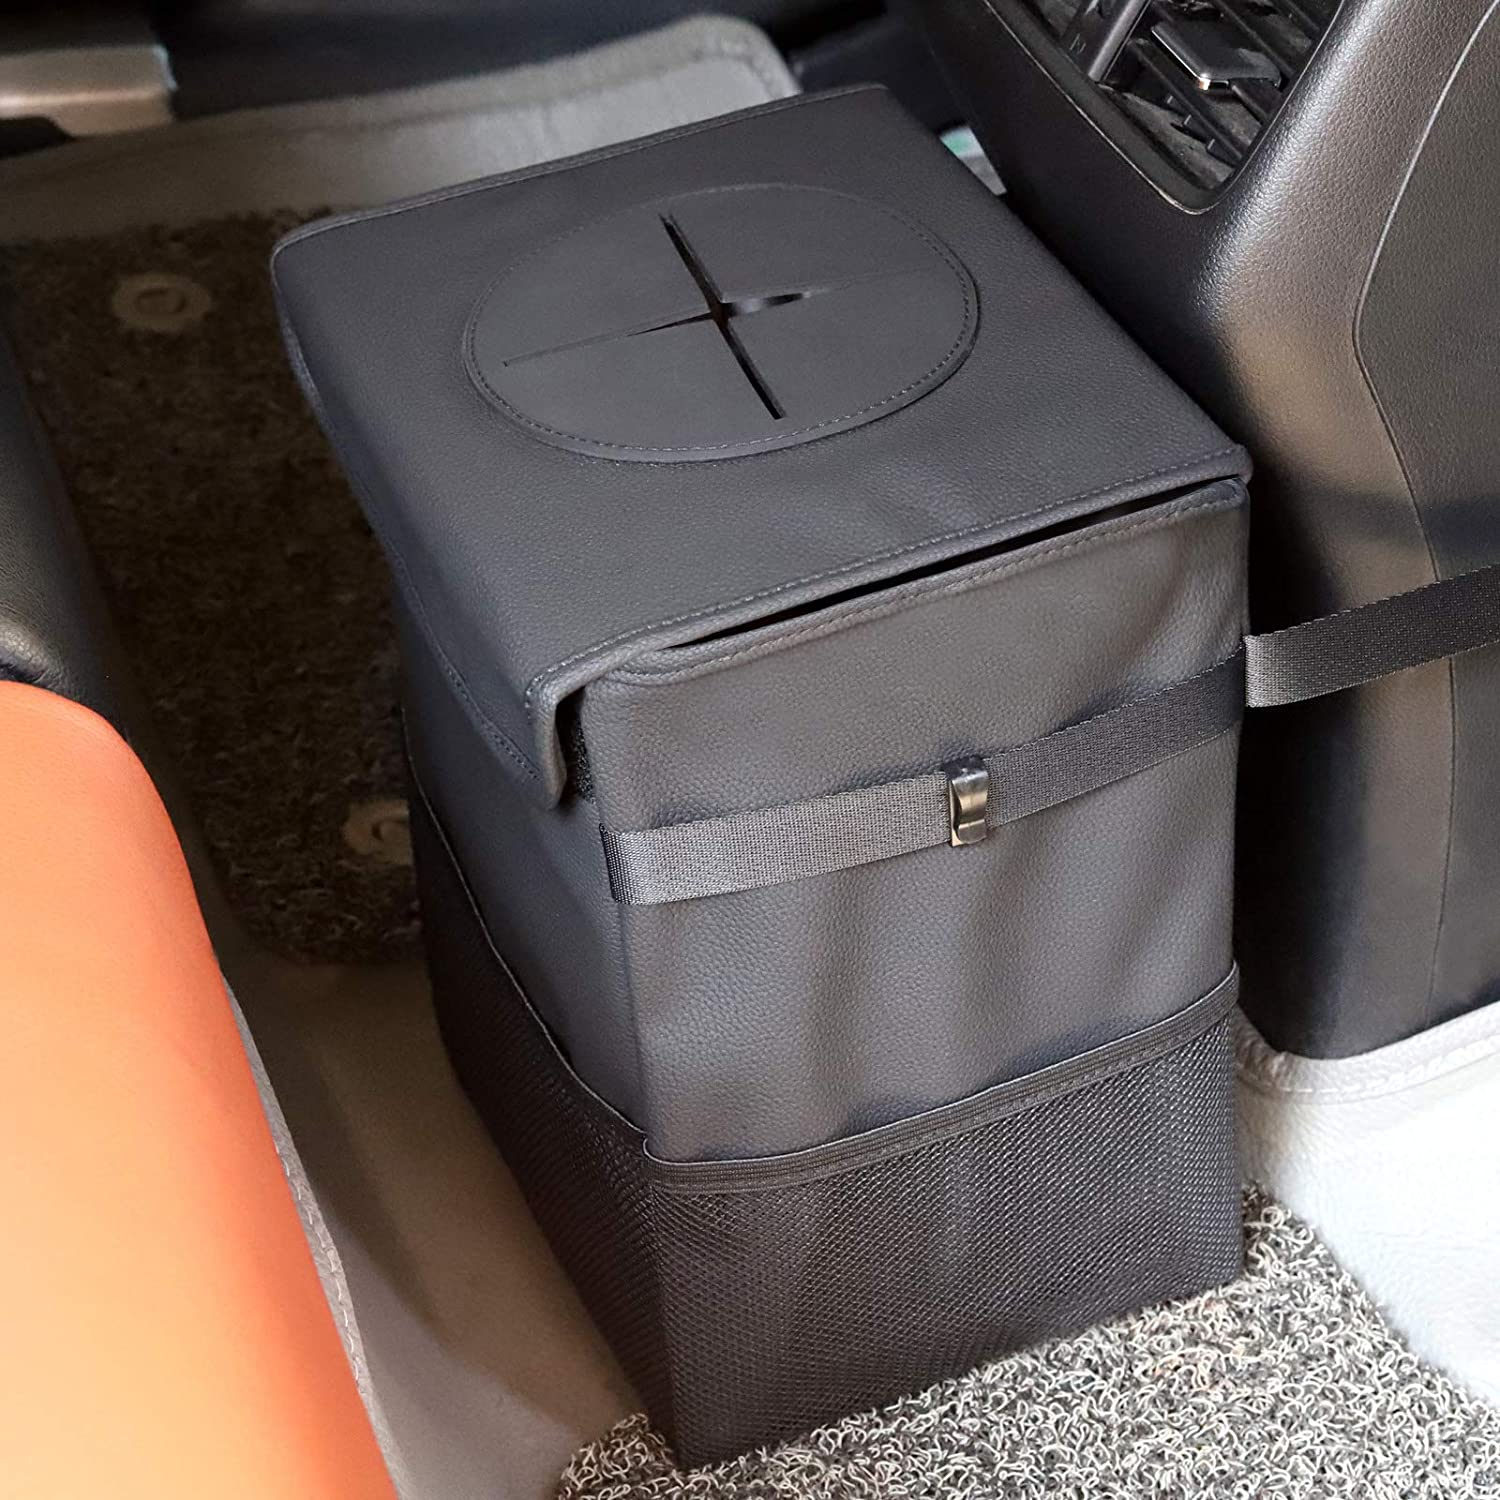 ERWUBA Challenge the lowest price Leather Car Trash Can with Lid 100% Storage Pockets Super special price and